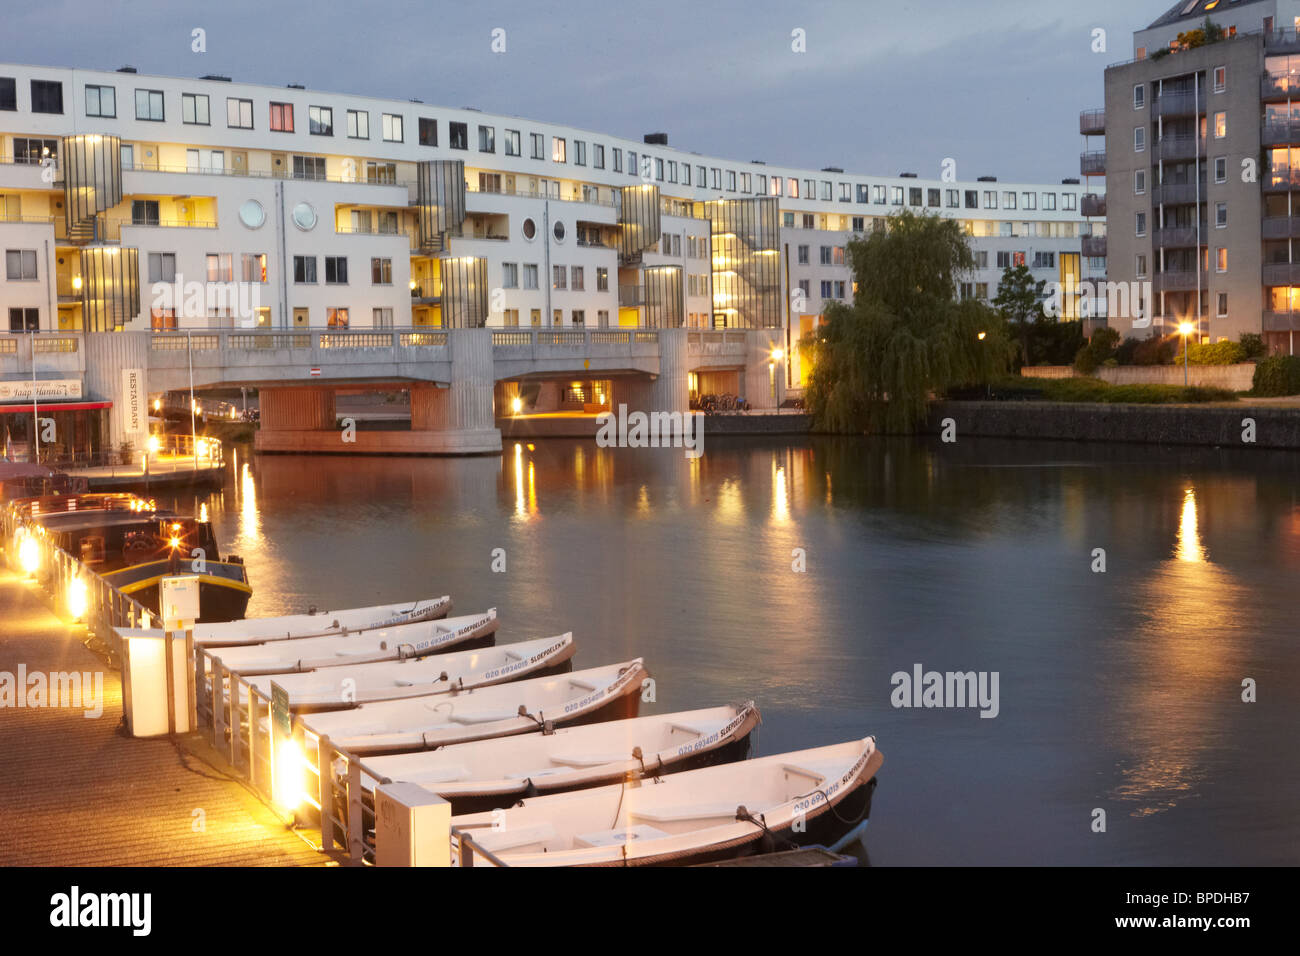 Eastern Docklands walk in Amsterdam - Stock Image